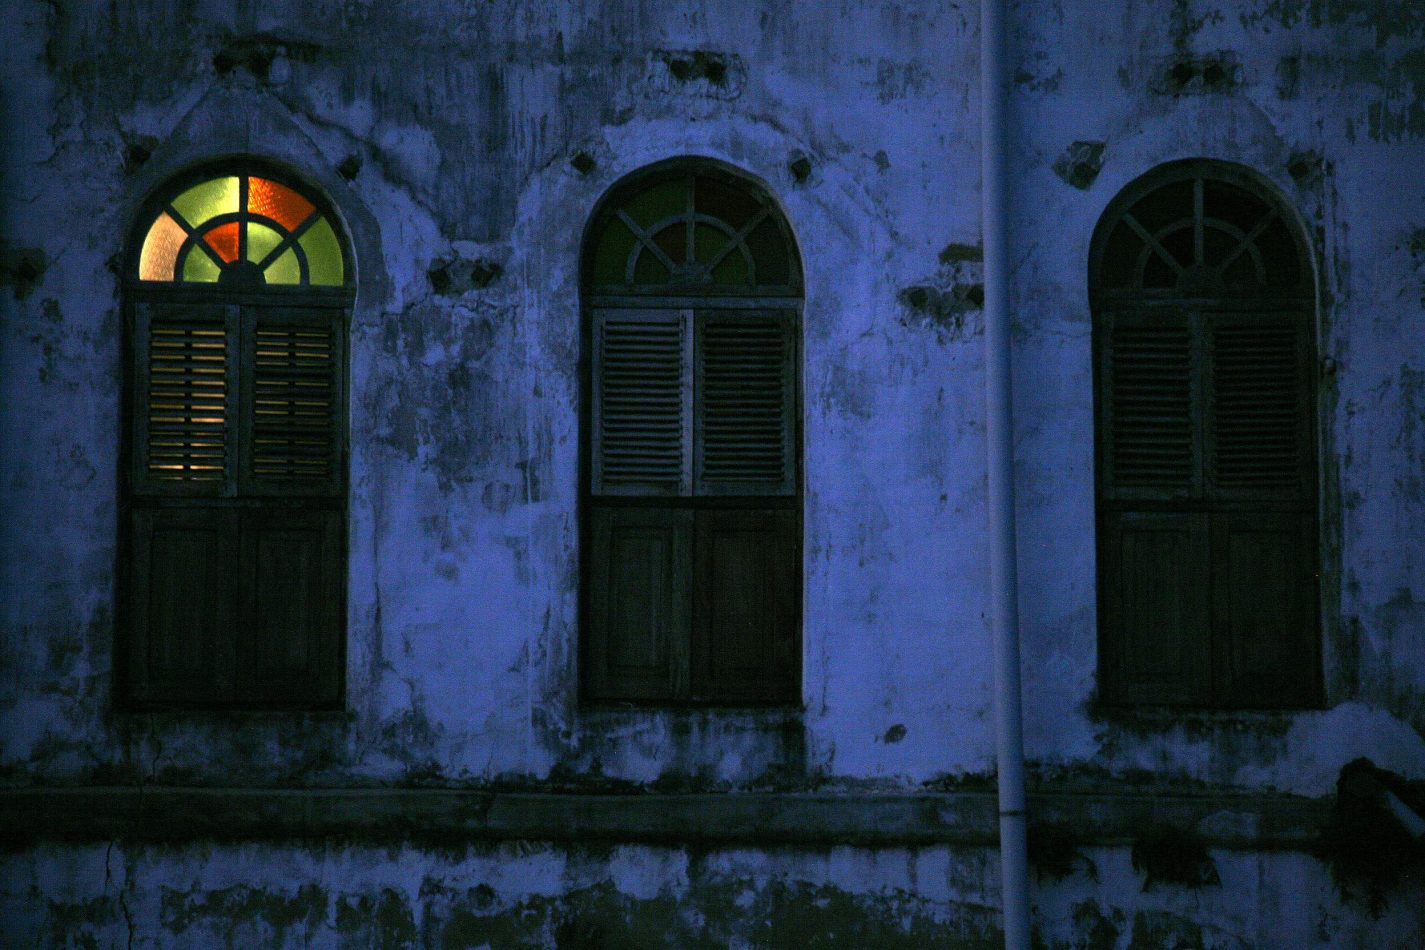 Anthony Ellis Photography: Mzungu - Lit Window